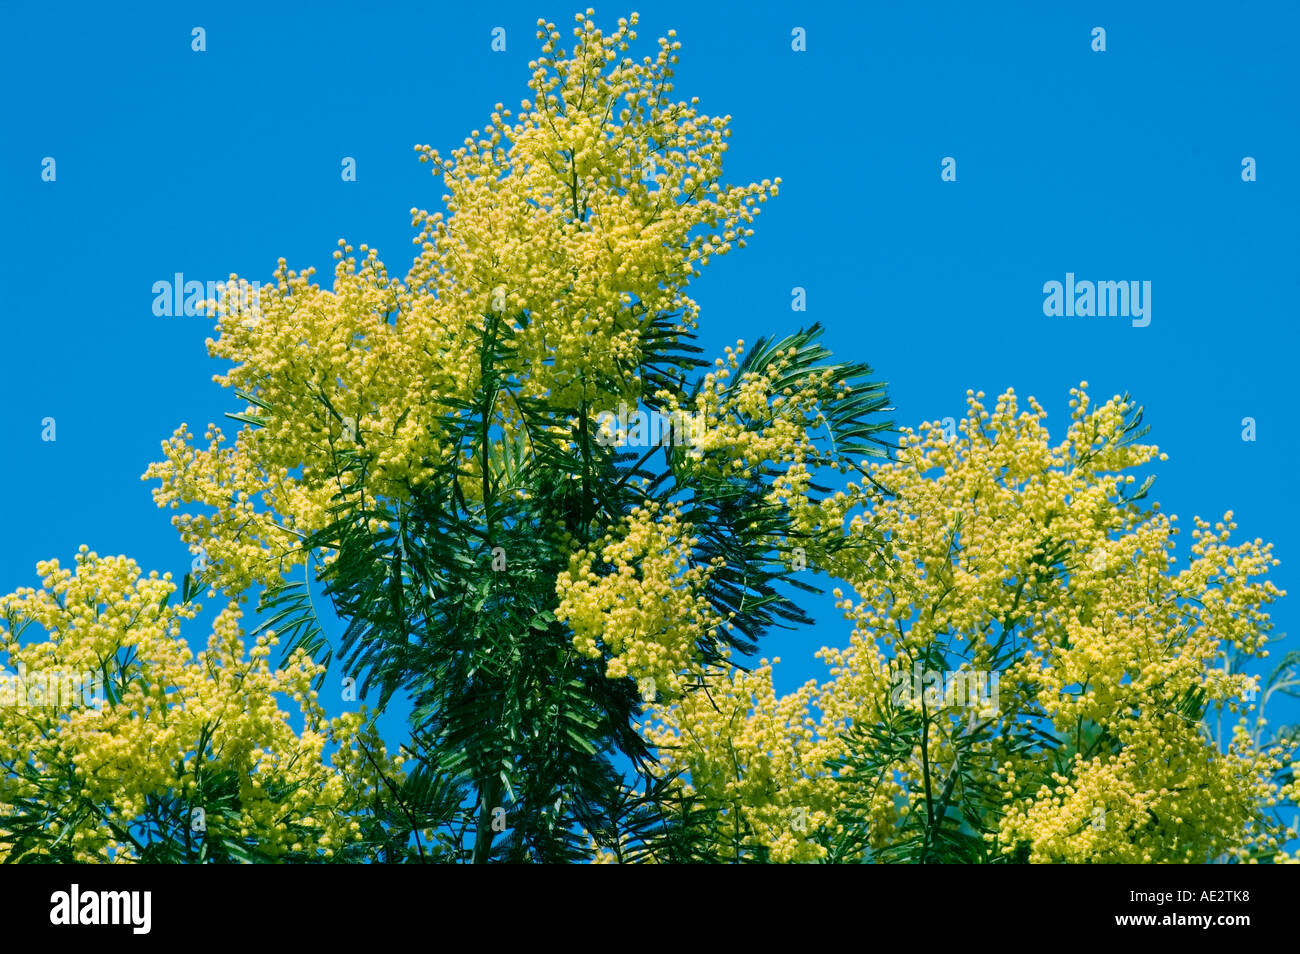 Flowering tree from australia yellow stock photos flowering tree flowering tree from australia yellow flowers in early spring sometimes winter stock image mightylinksfo